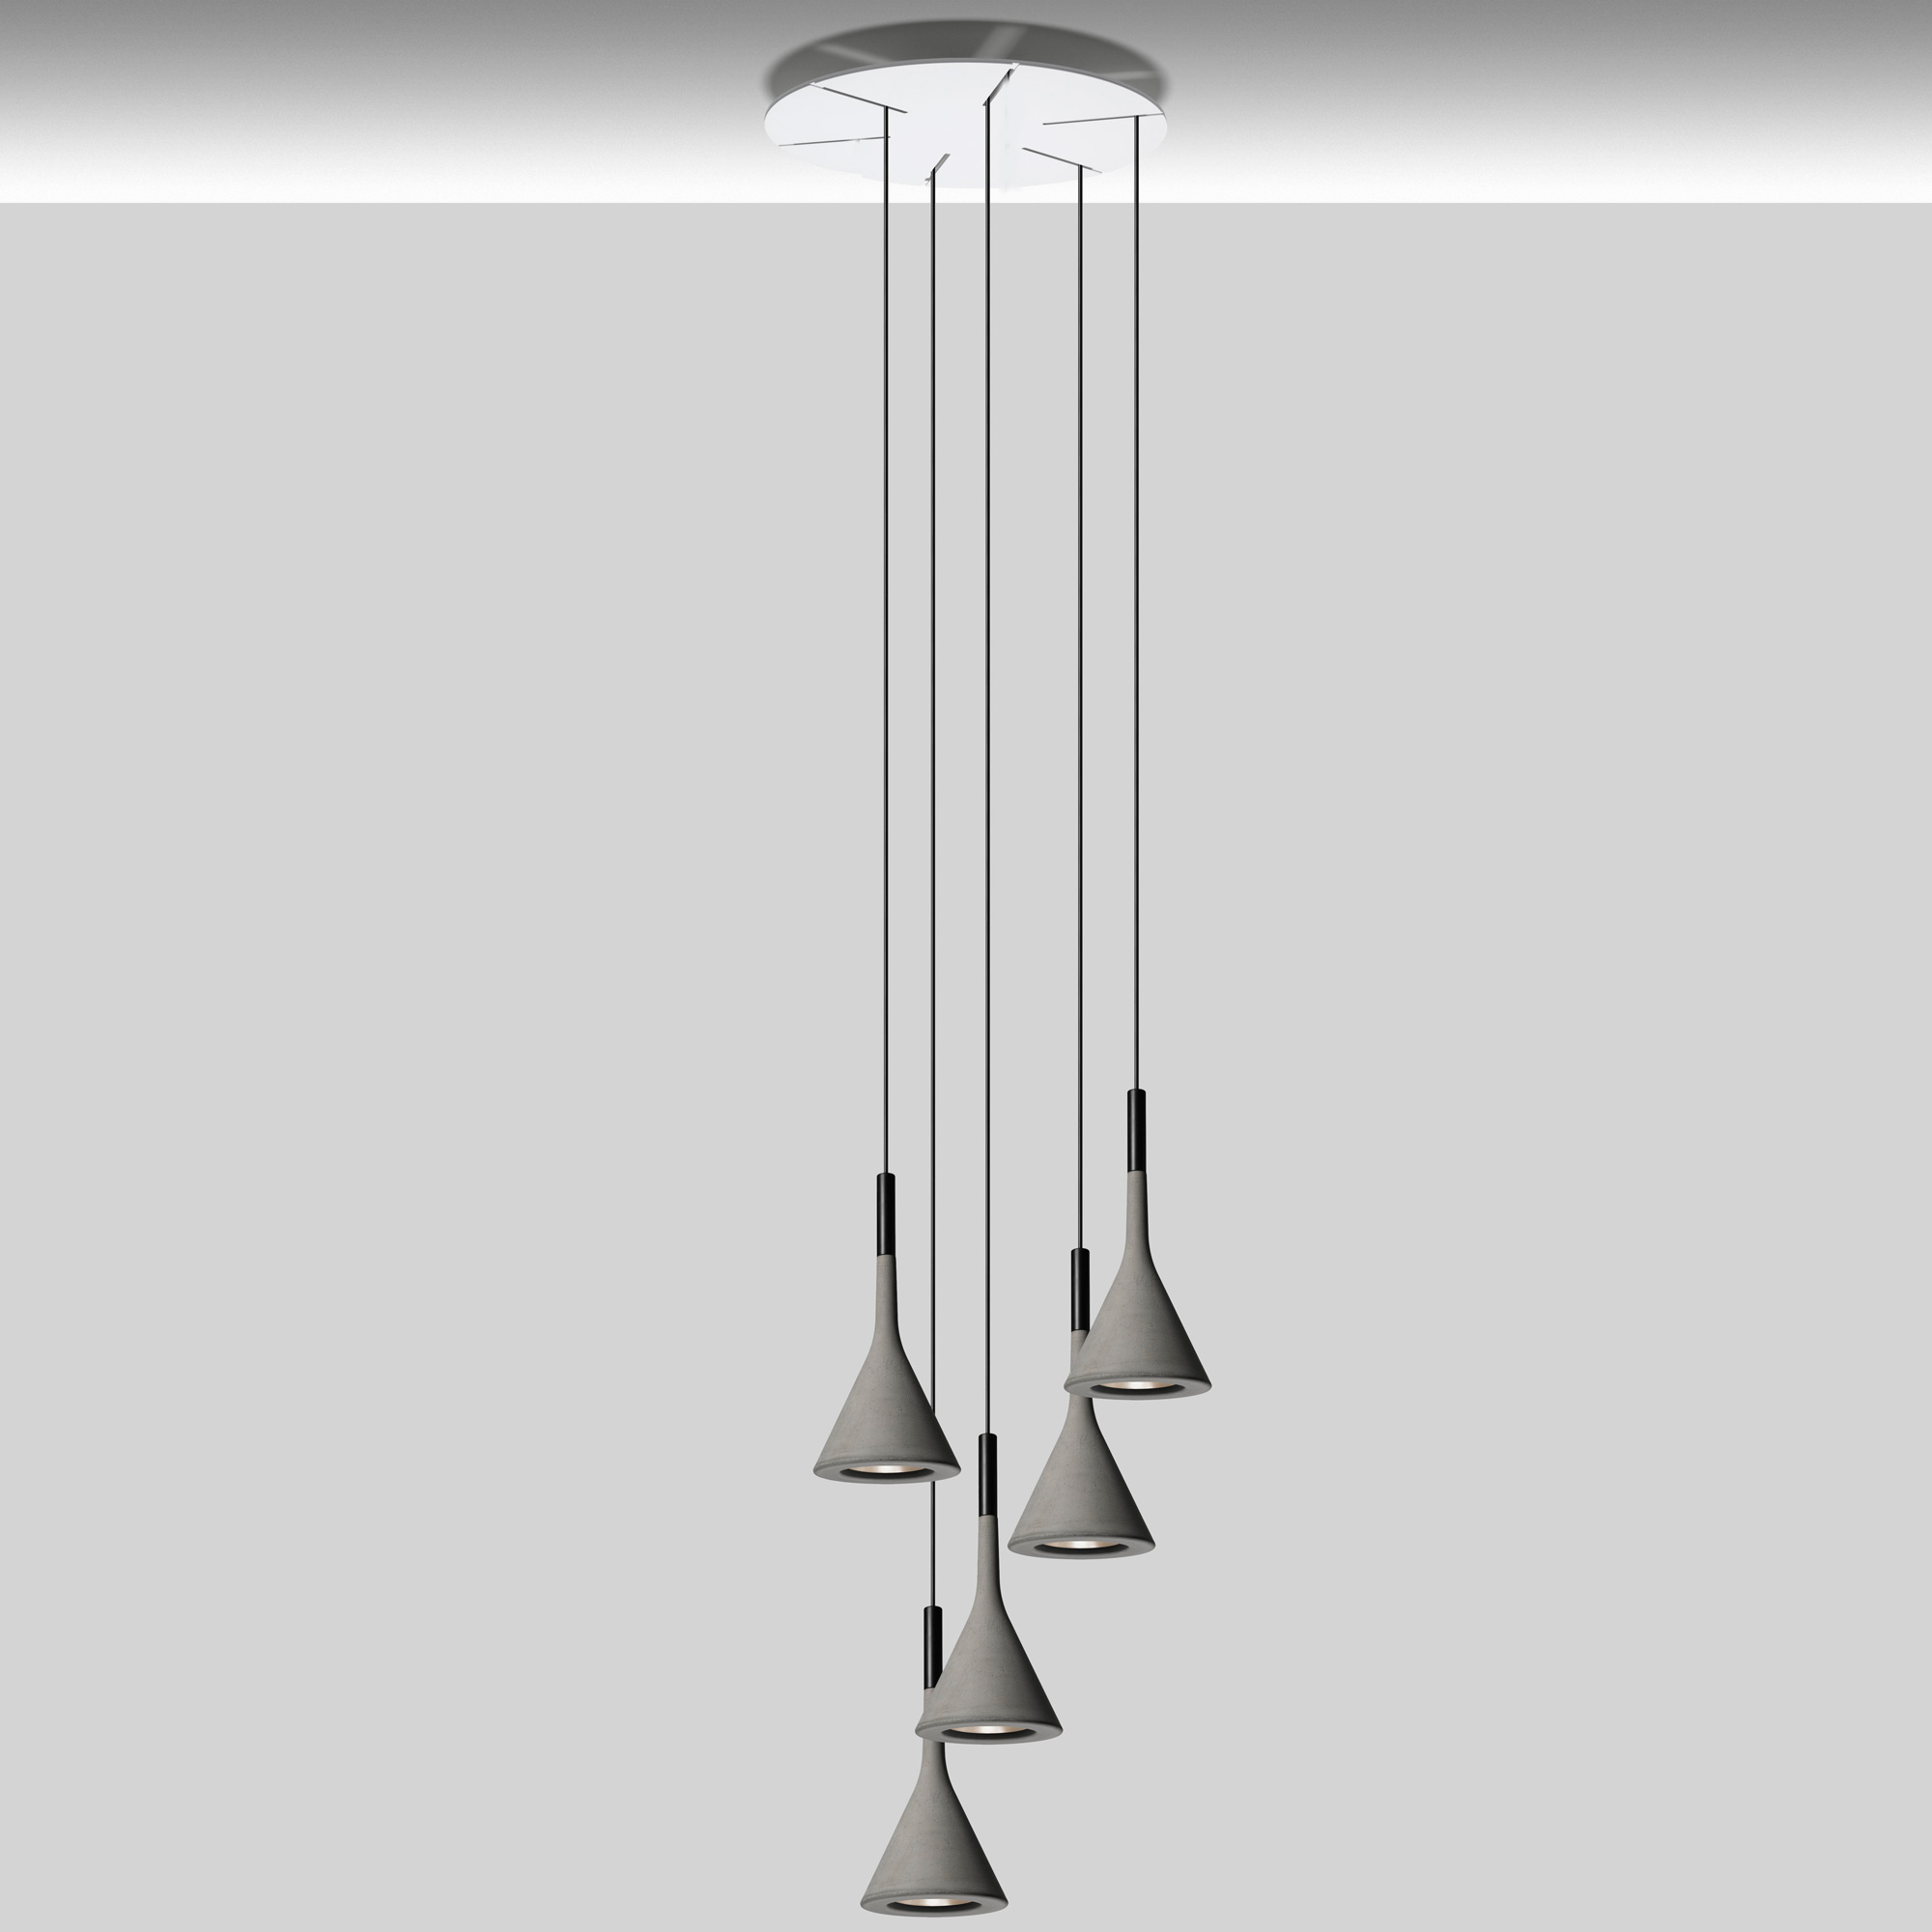 Foscarini Lights Aplomb Round Multi Light Pendant By Foscarini Lc Aplomb Round 5 Gy